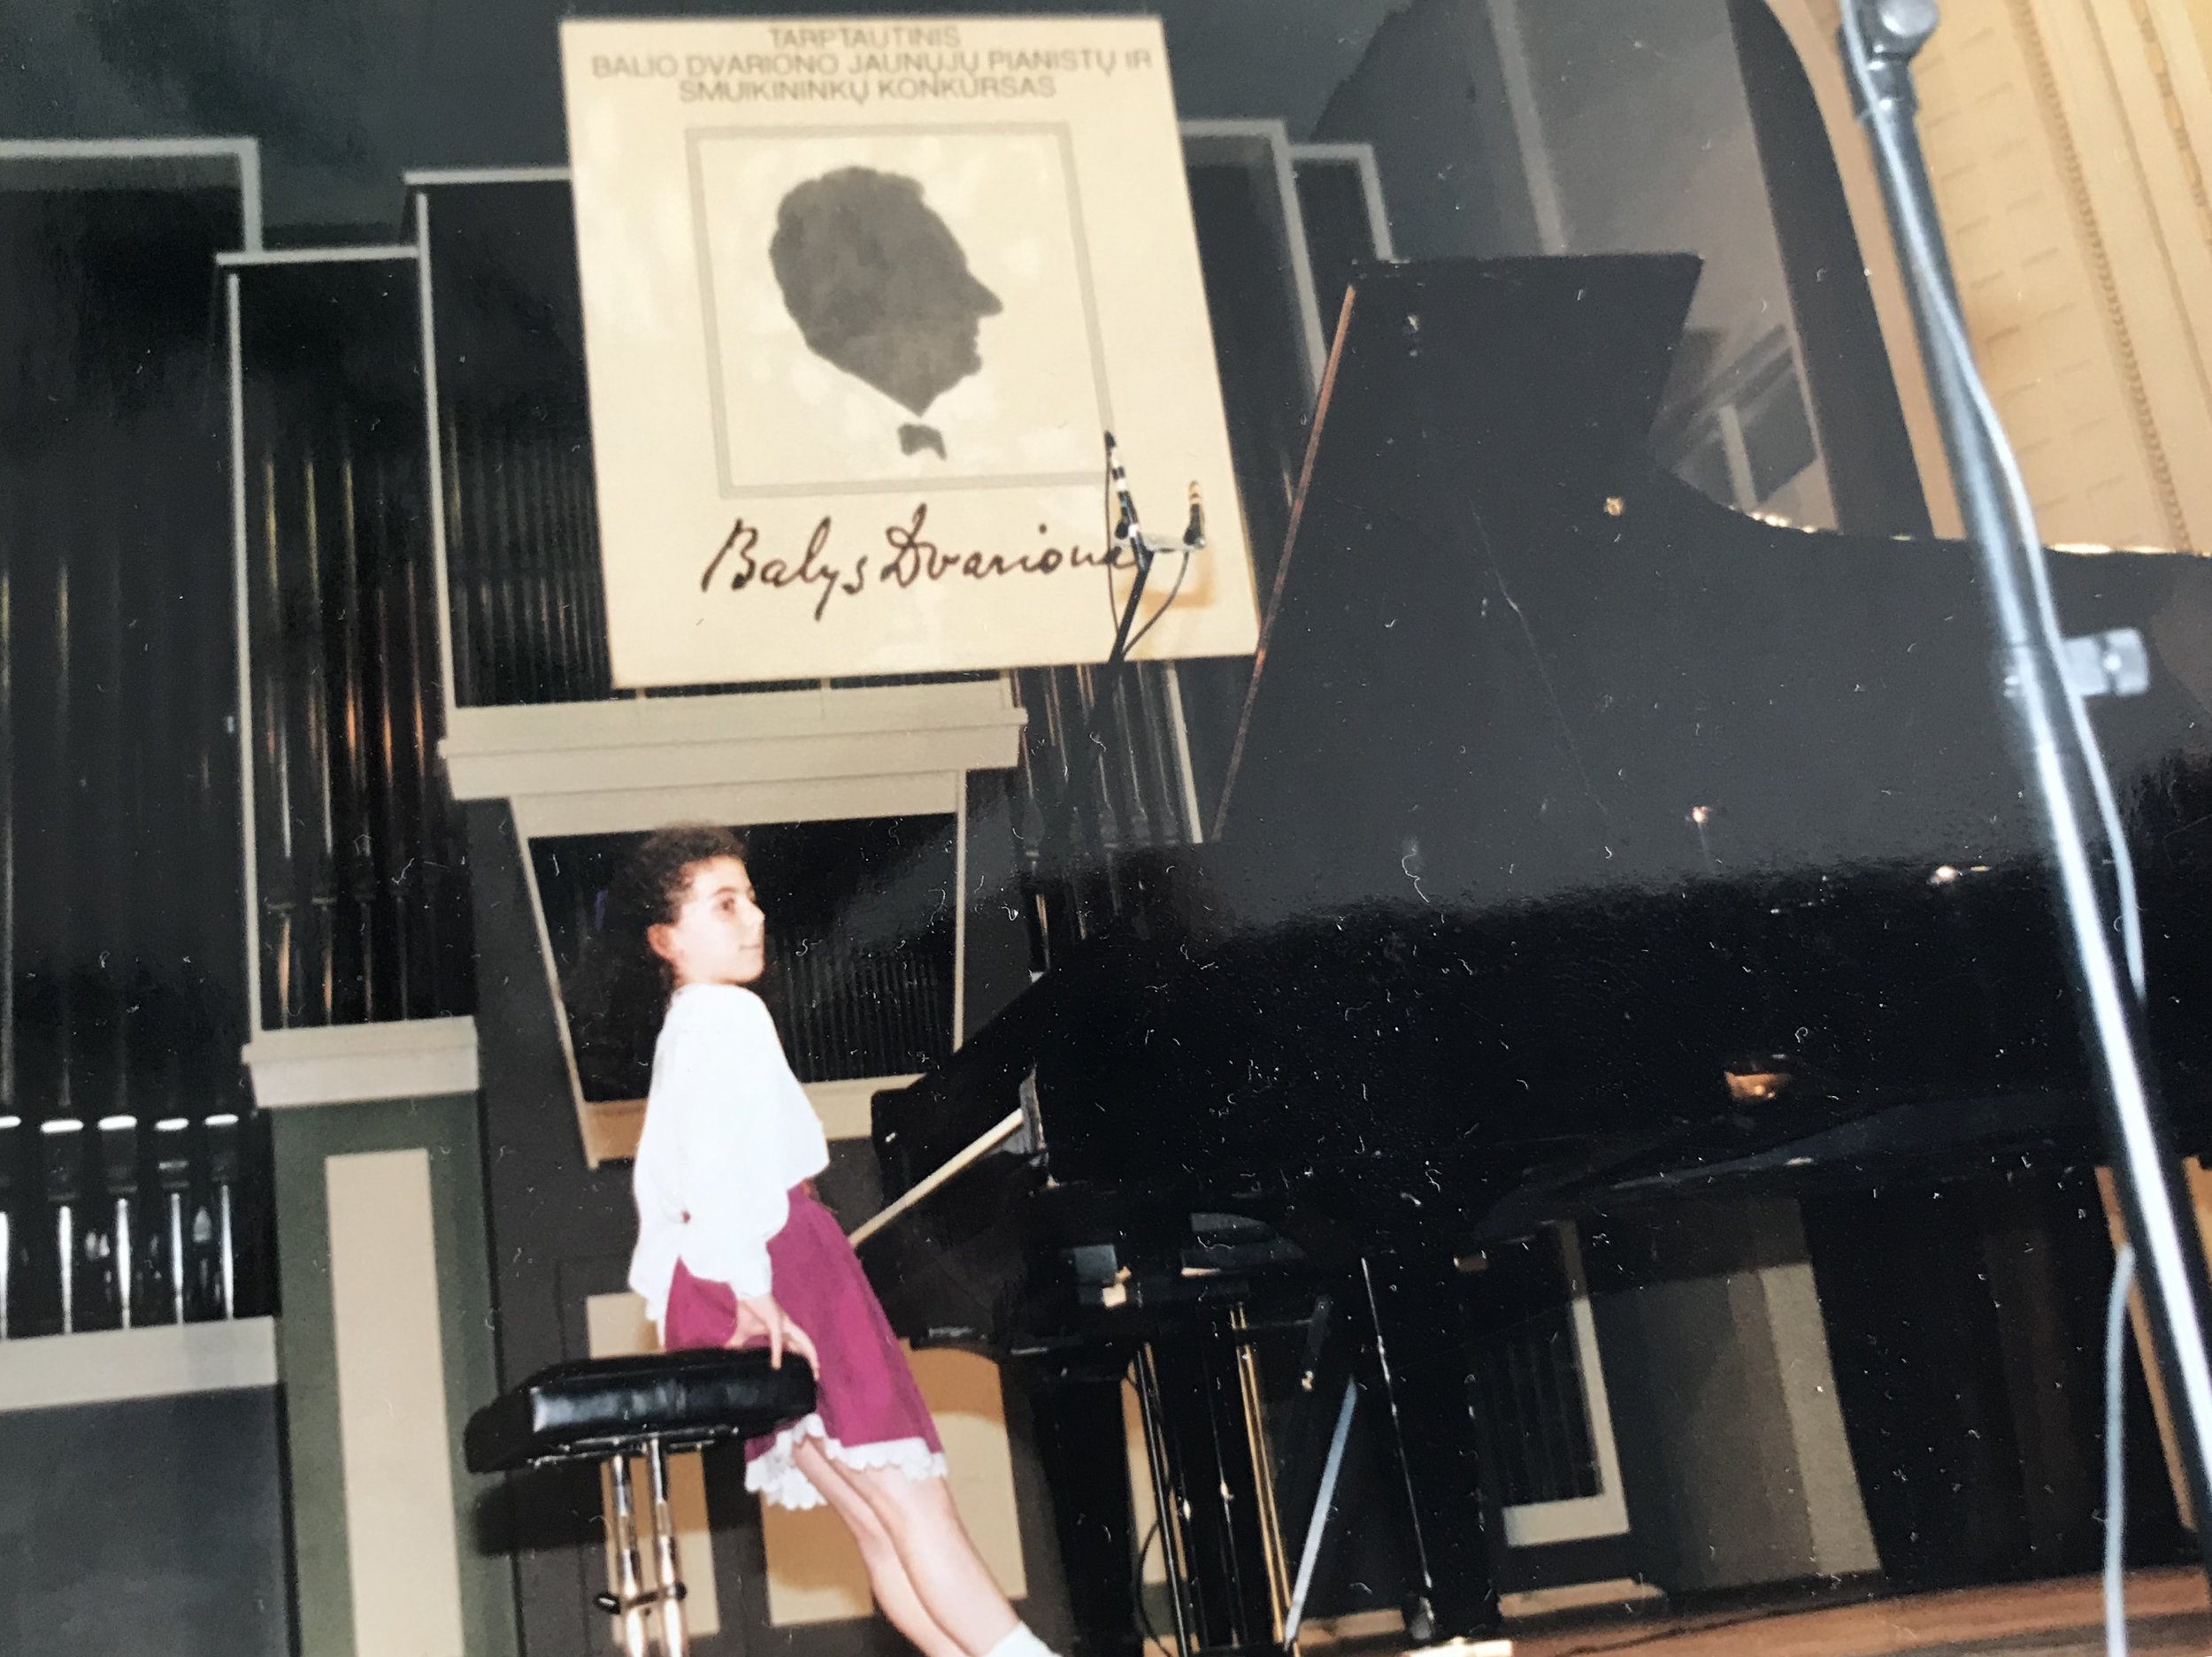 Winner's Gala at Balys Dvarionas International Piano Competition in Lithuania